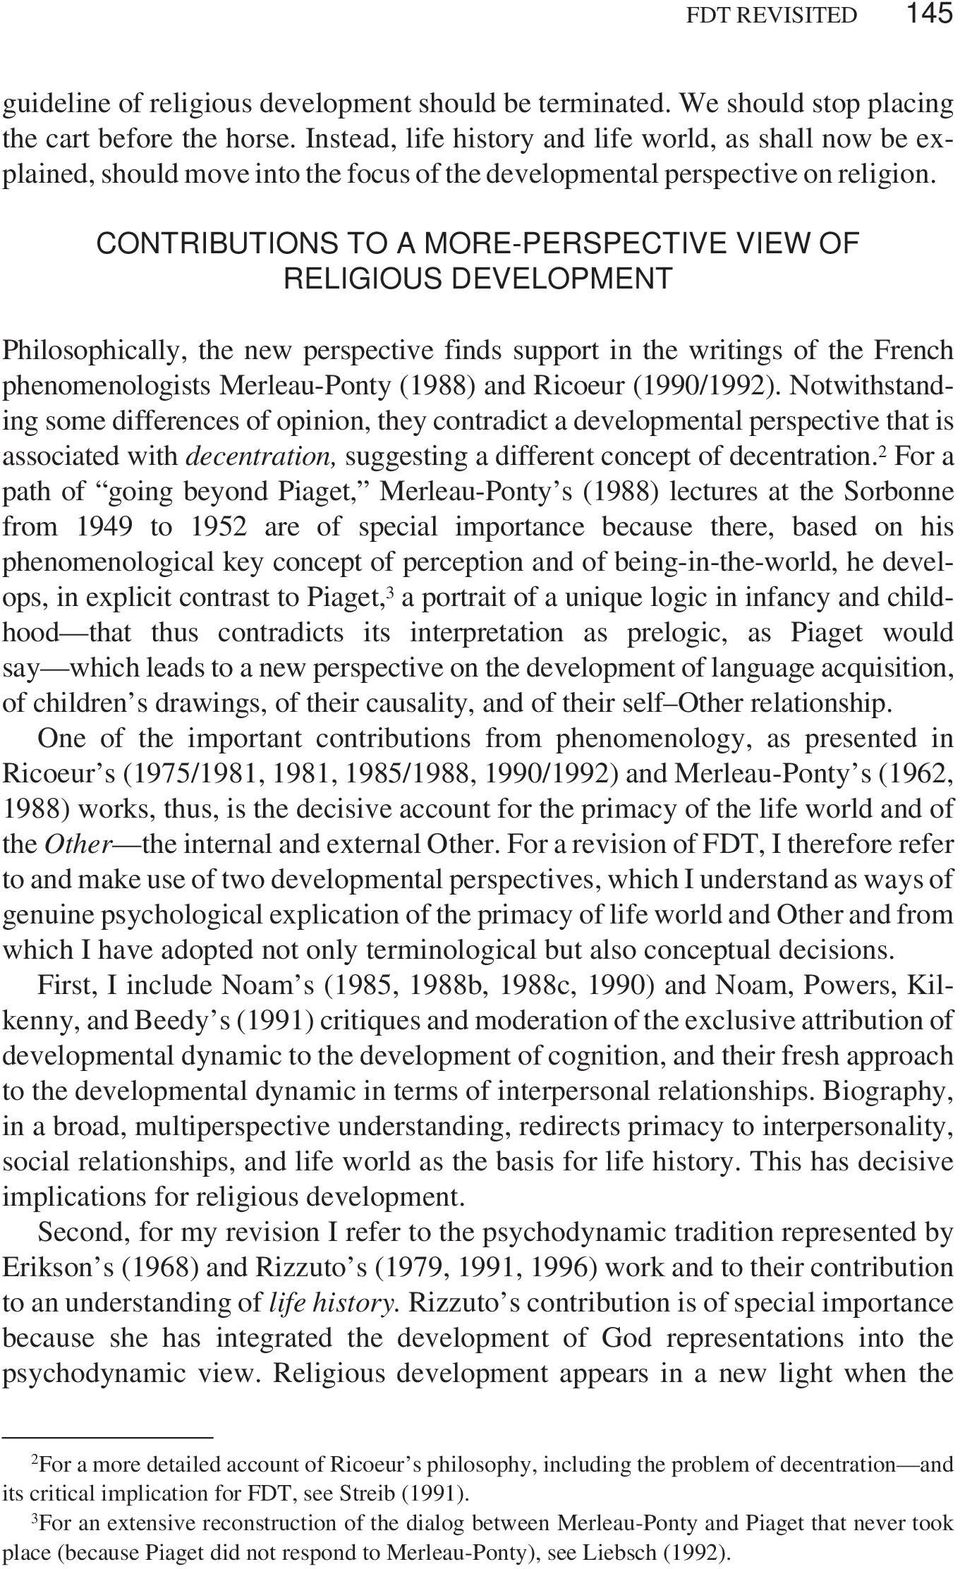 CONTRIBUTIONS TO A MORE-PERSPECTIVE VIEW OF RELIGIOUS DEVELOPMENT Philosophically, the new perspective finds support in the writings of the French phenomenologists Merleau-Ponty (1988) and Ricoeur